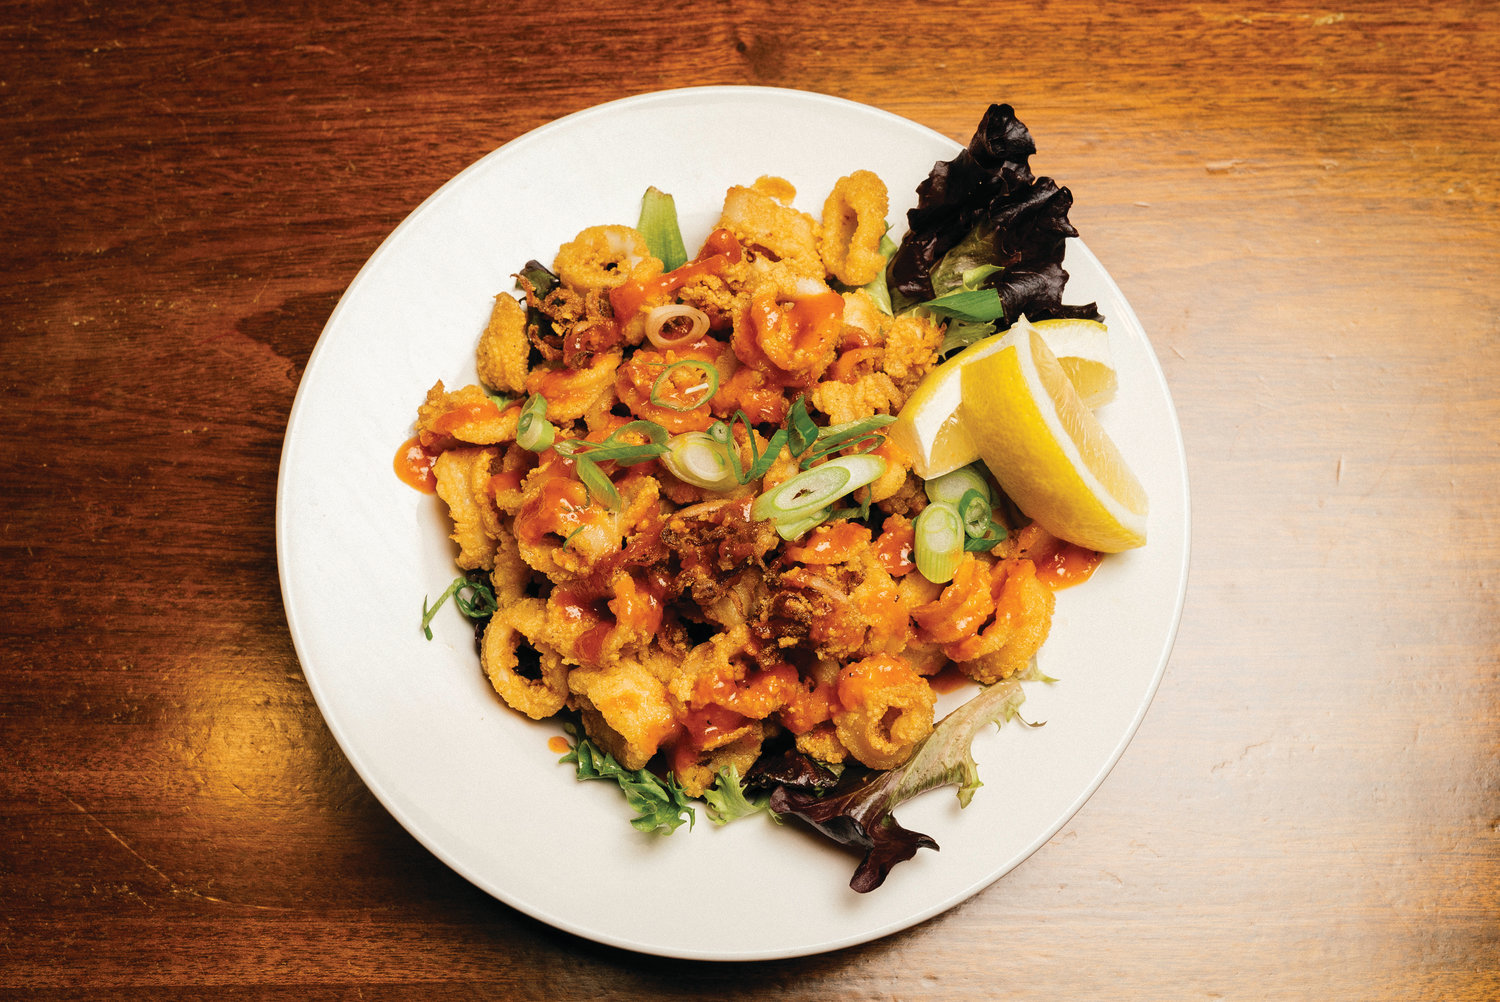 Crispy calamari with smoked pineapple-Sriracha sauce